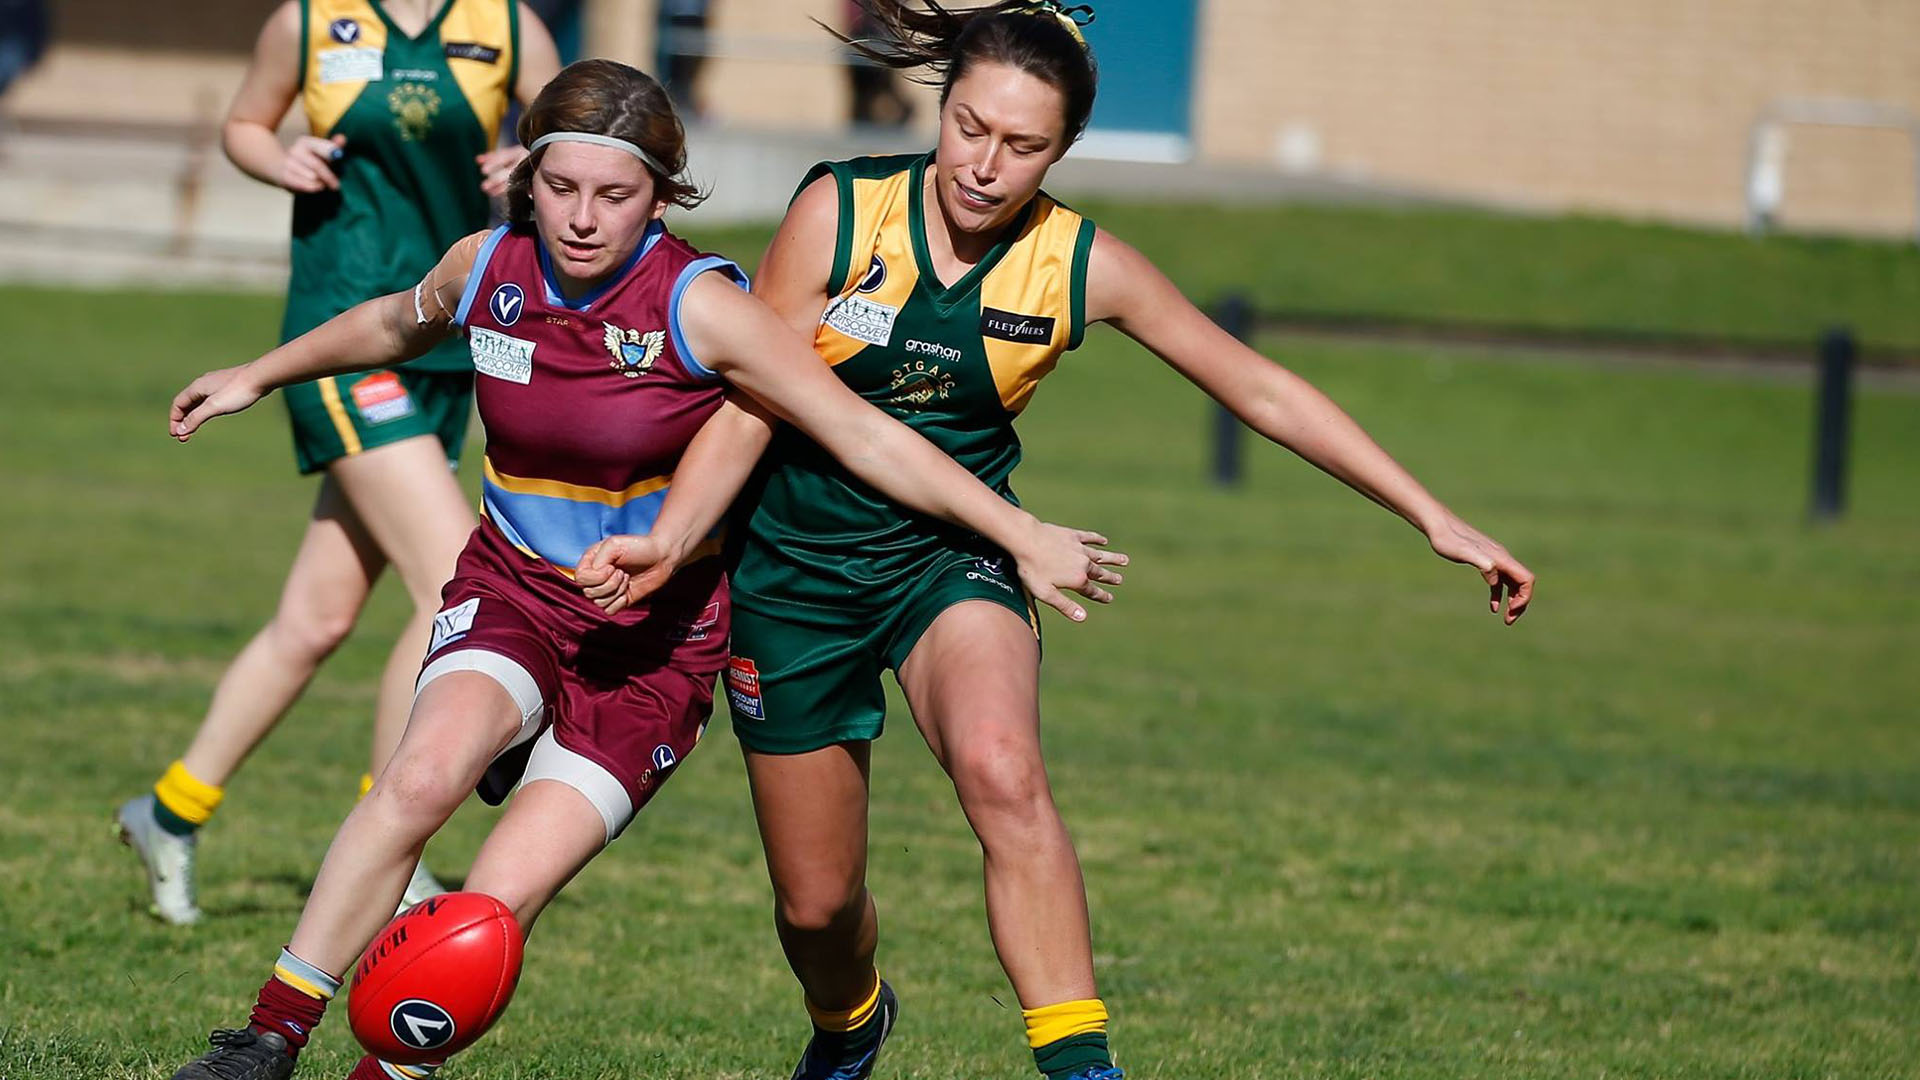 OTGFC Website_Image 13.jpg